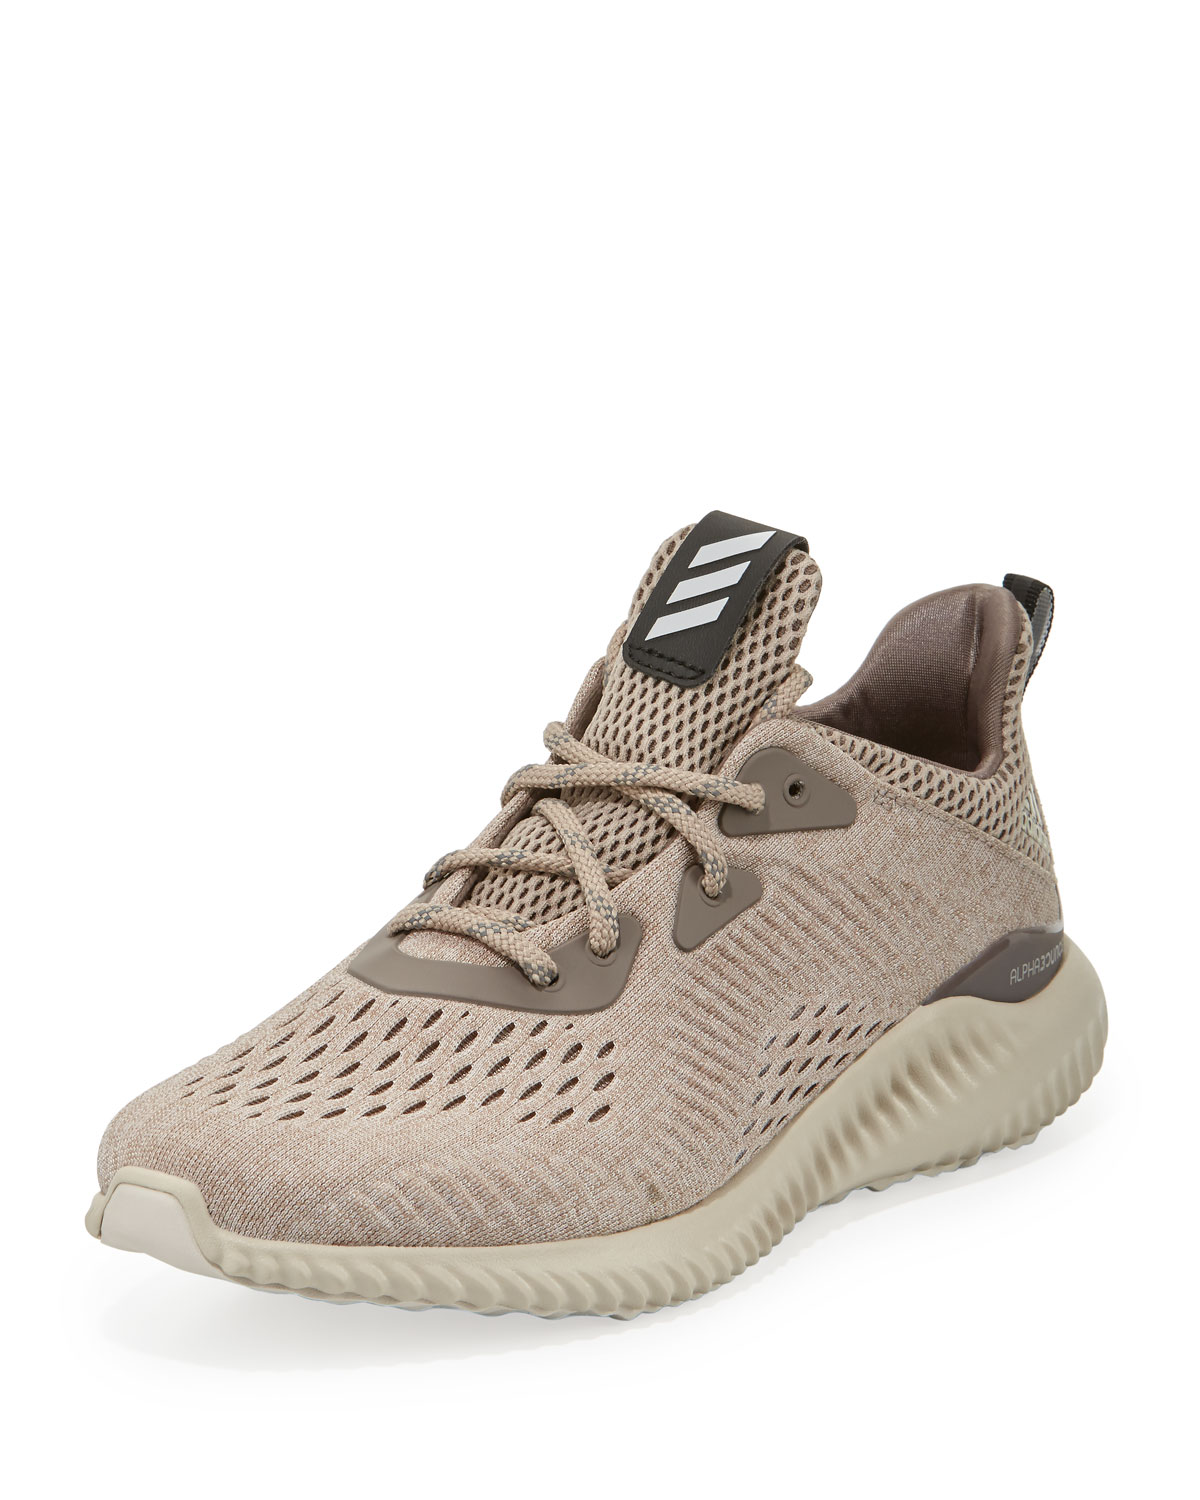 great fit 5a1c7 6ebc5 Alphabounce Engineered Mesh Sneaker, Tech EarthClear BrownCrystal White